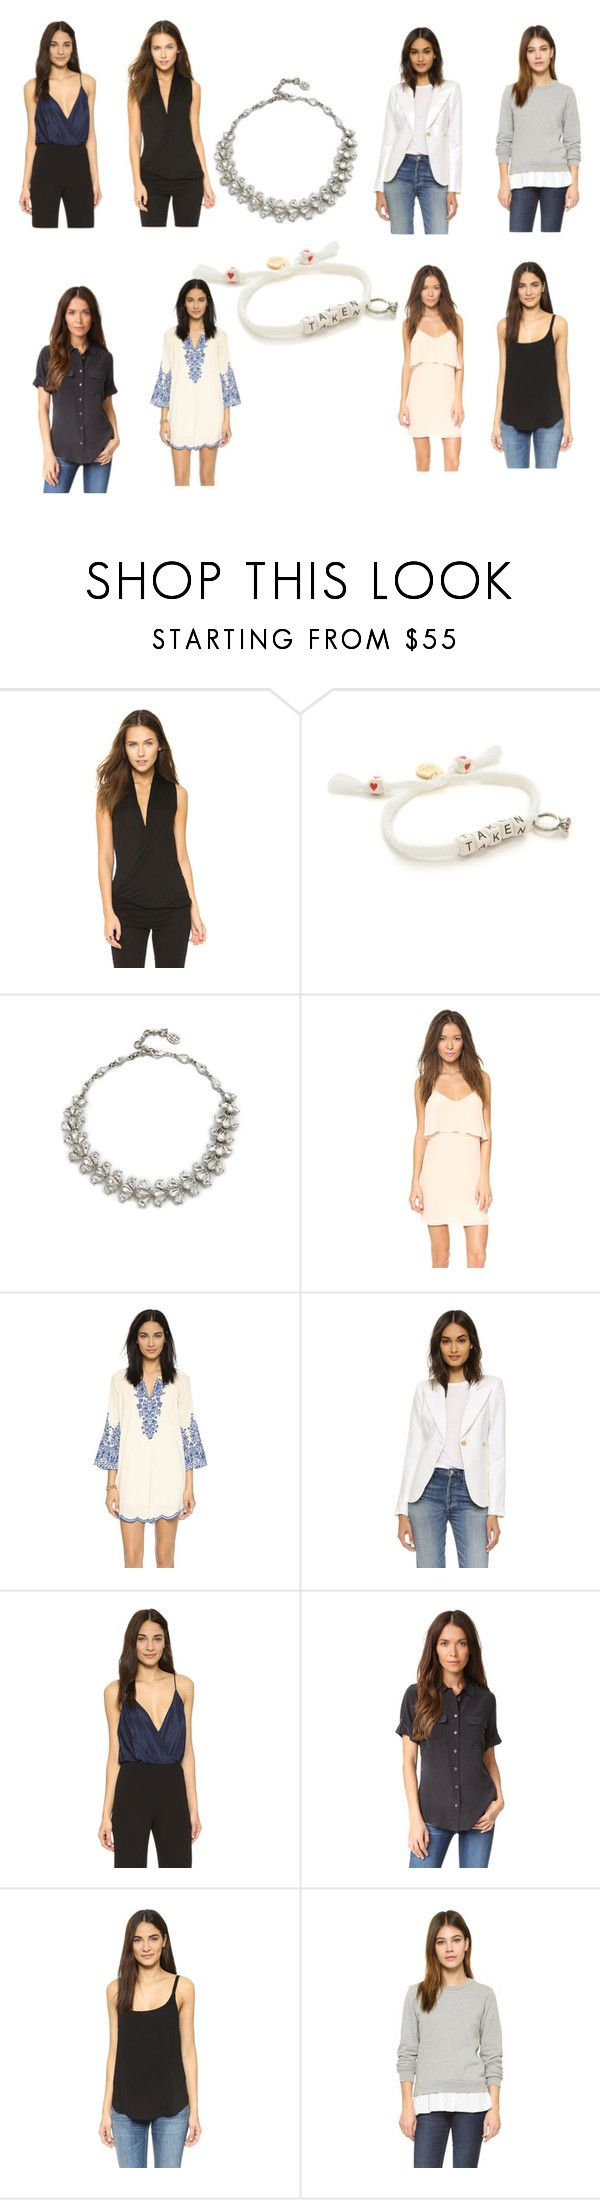 """""""fashion trends collection"""" by monica022 ❤ liked on Polyvore featuring Lanston, Venessa Arizaga, Ben-Amun, Rory Beca, Love Sam, Smythe, Alice + Olivia, Equipment, Splendid and Clu"""